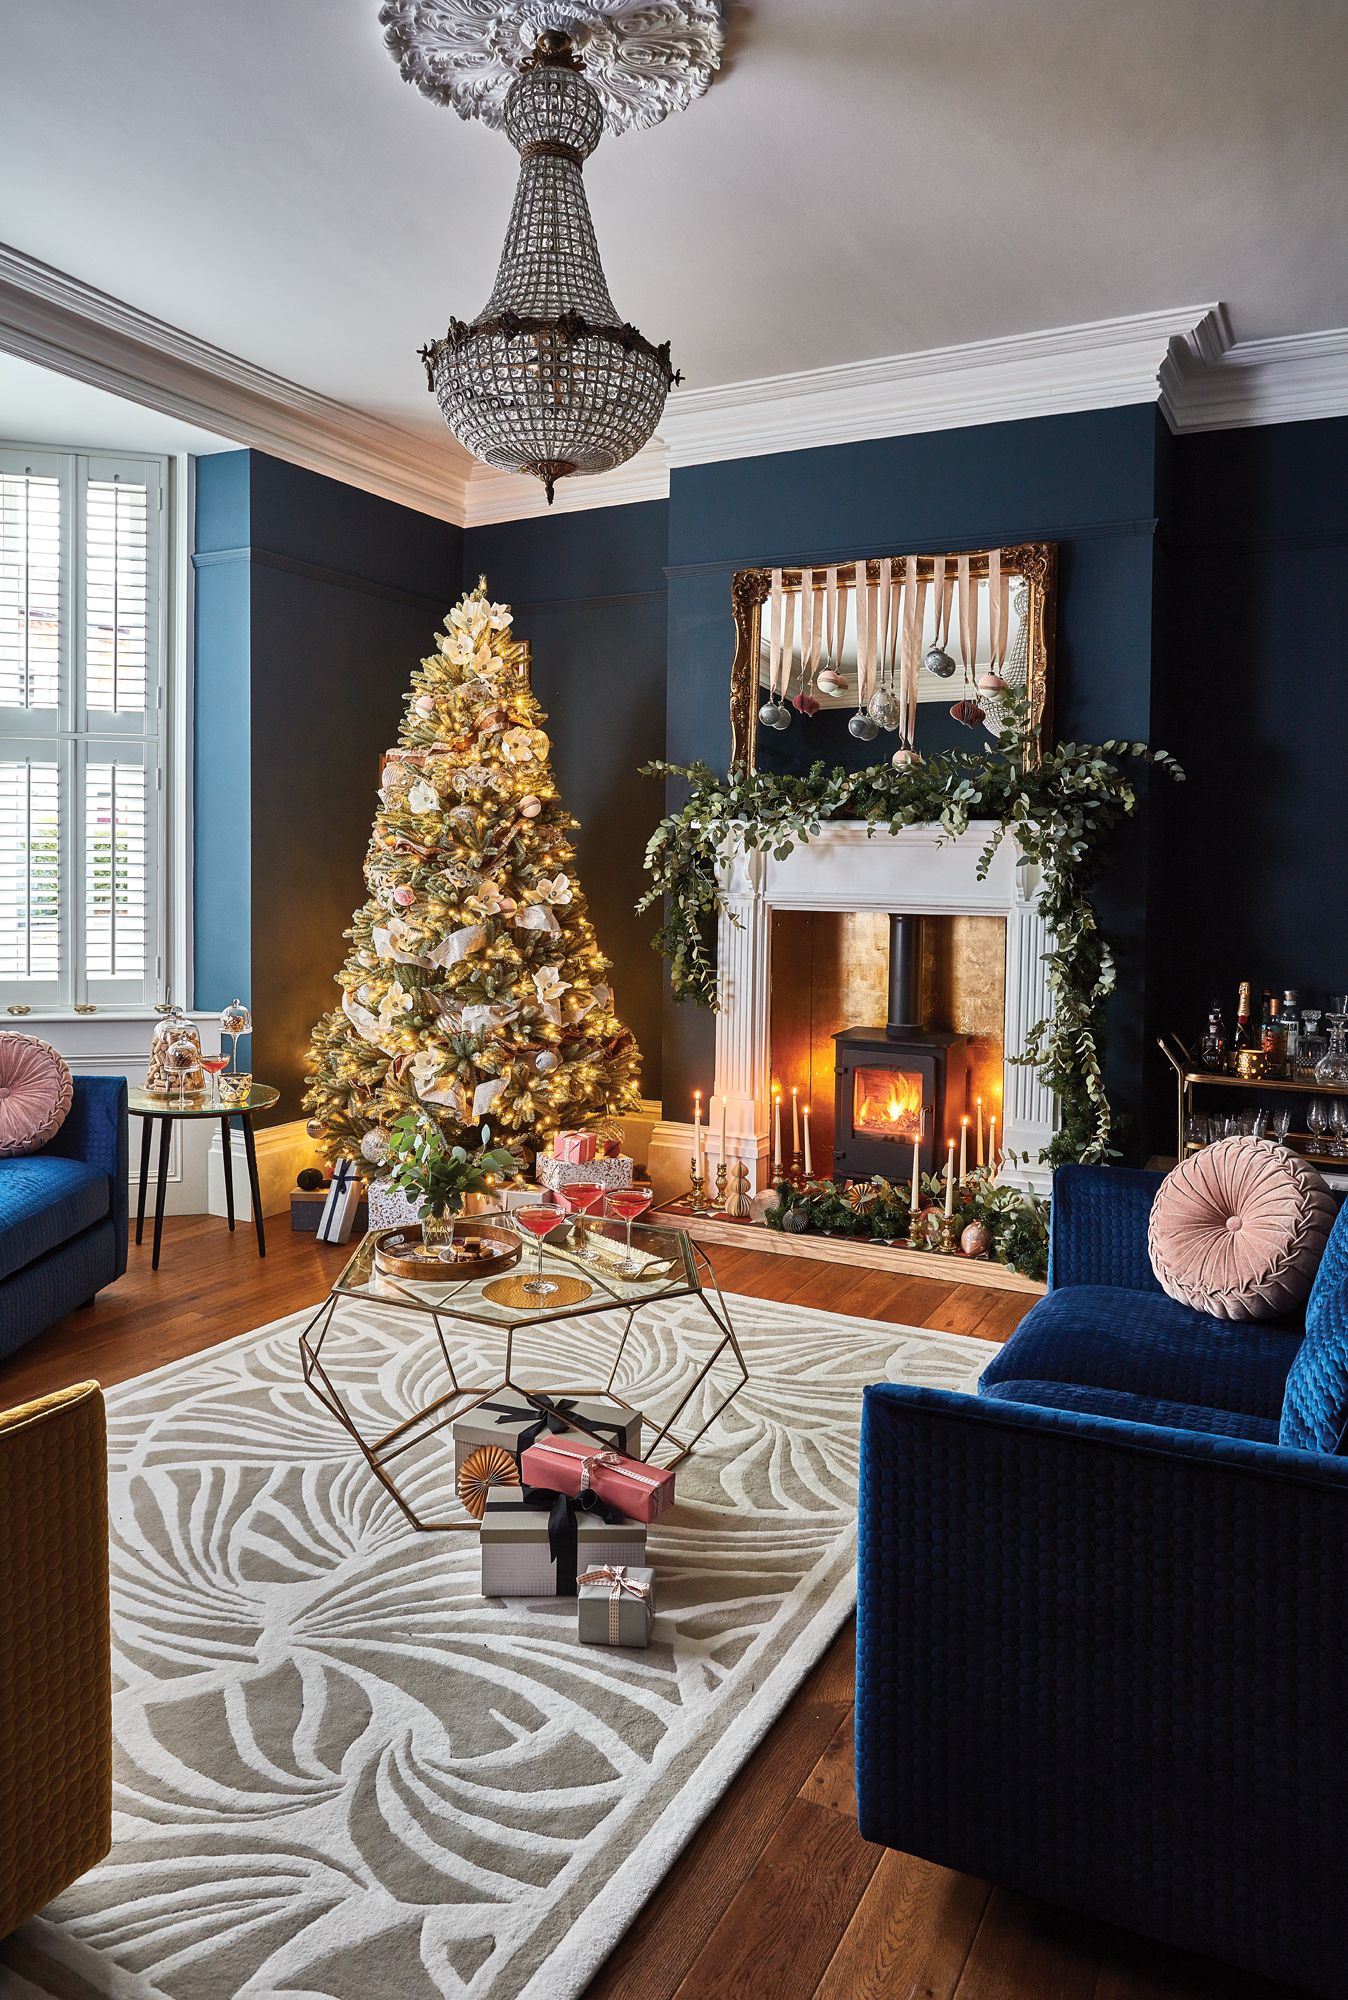 20 Christmas decor trends we're pinching from festive Instagrammers ...